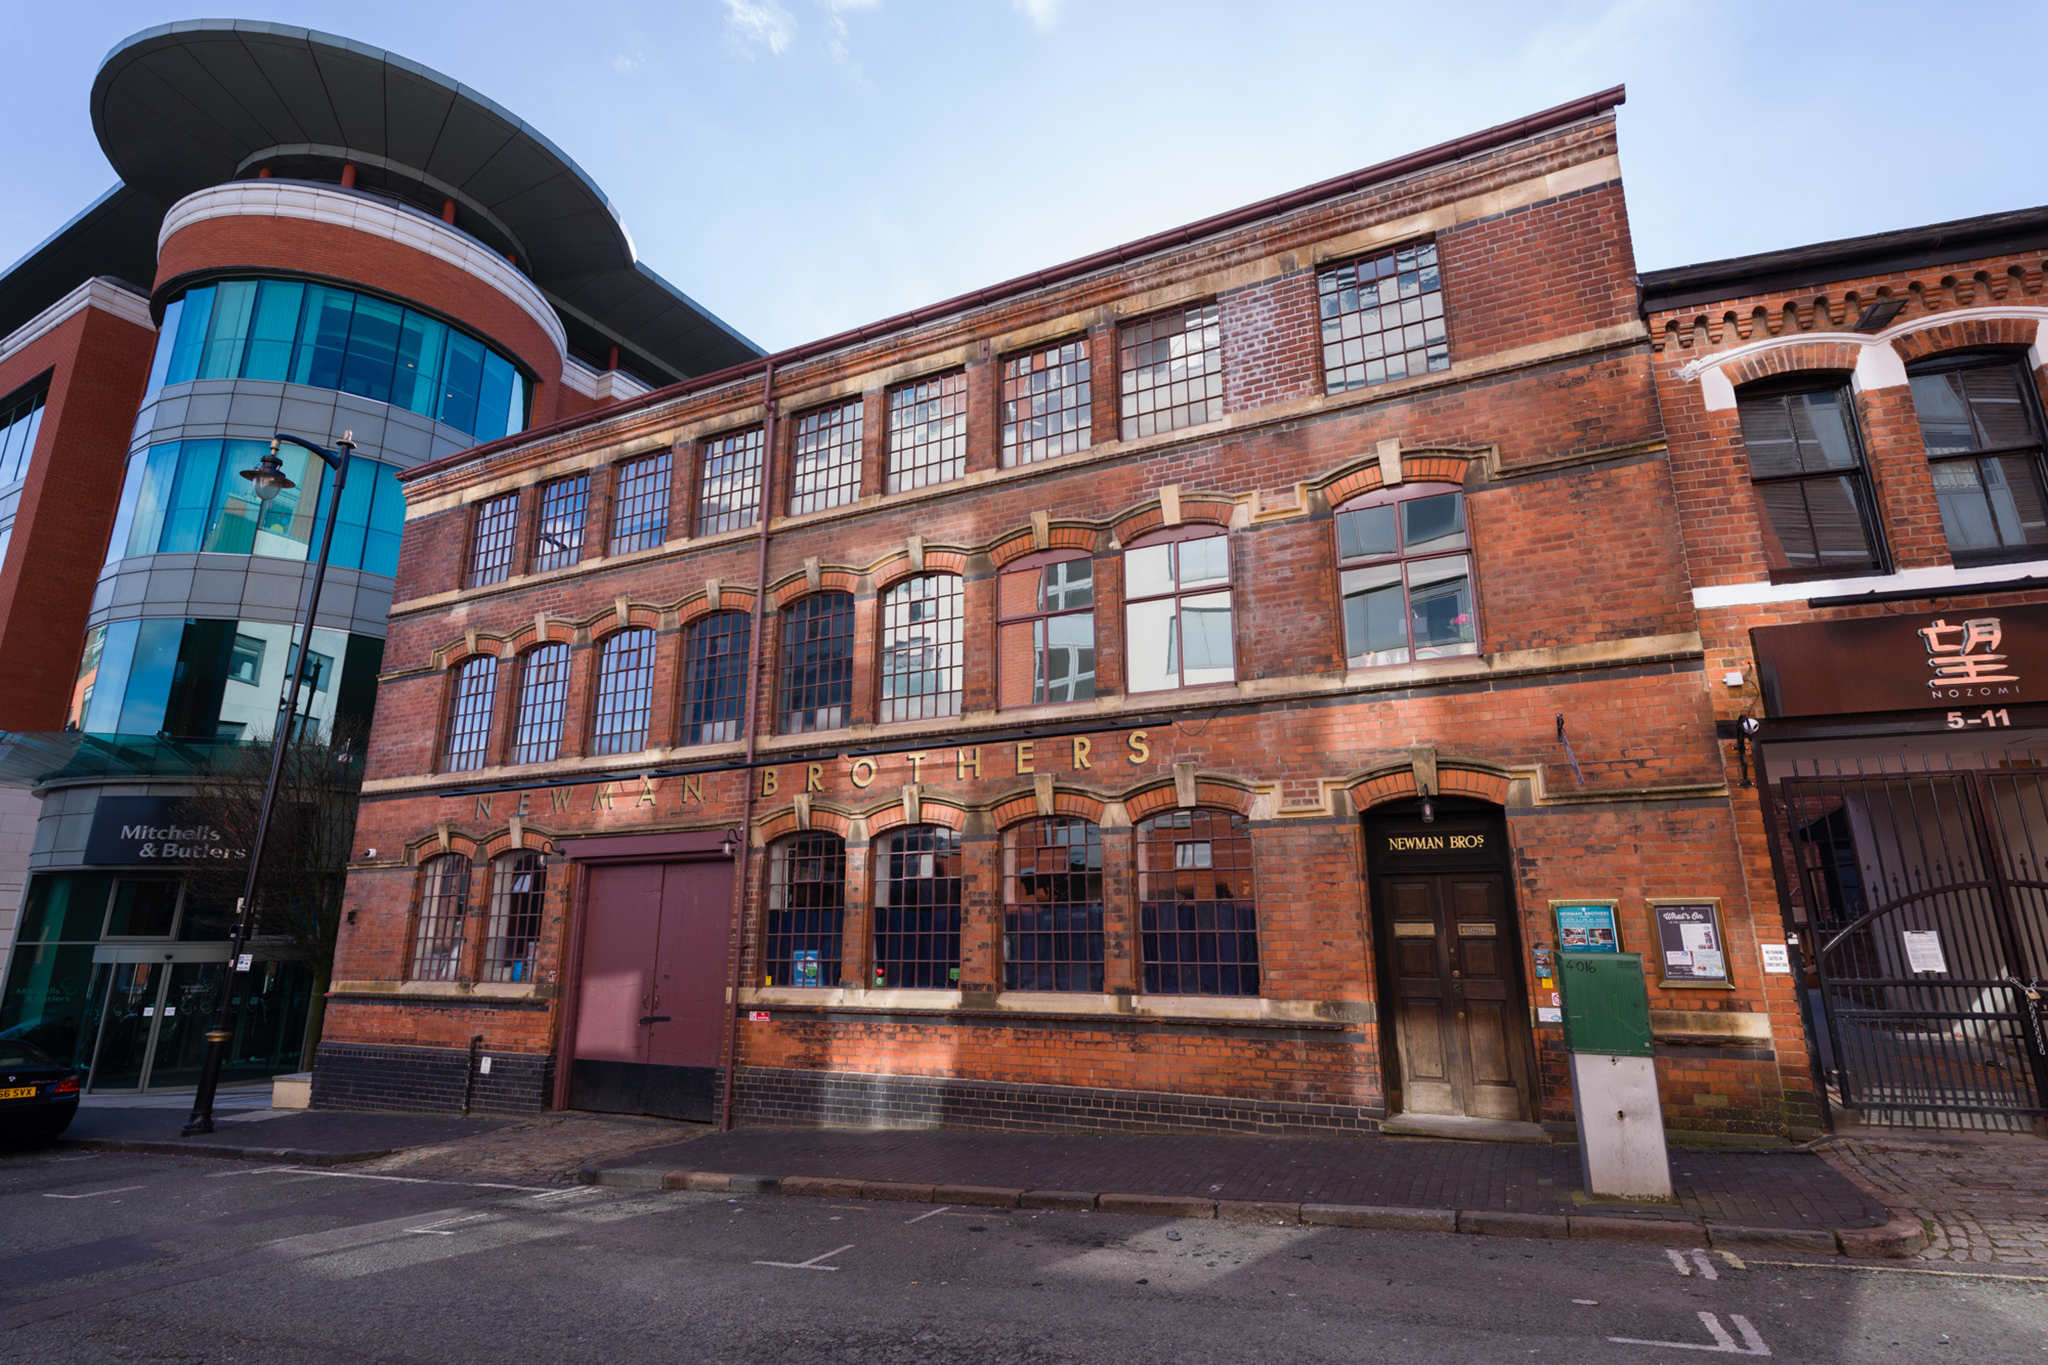 An insider's guide to the Jewellery Quarter